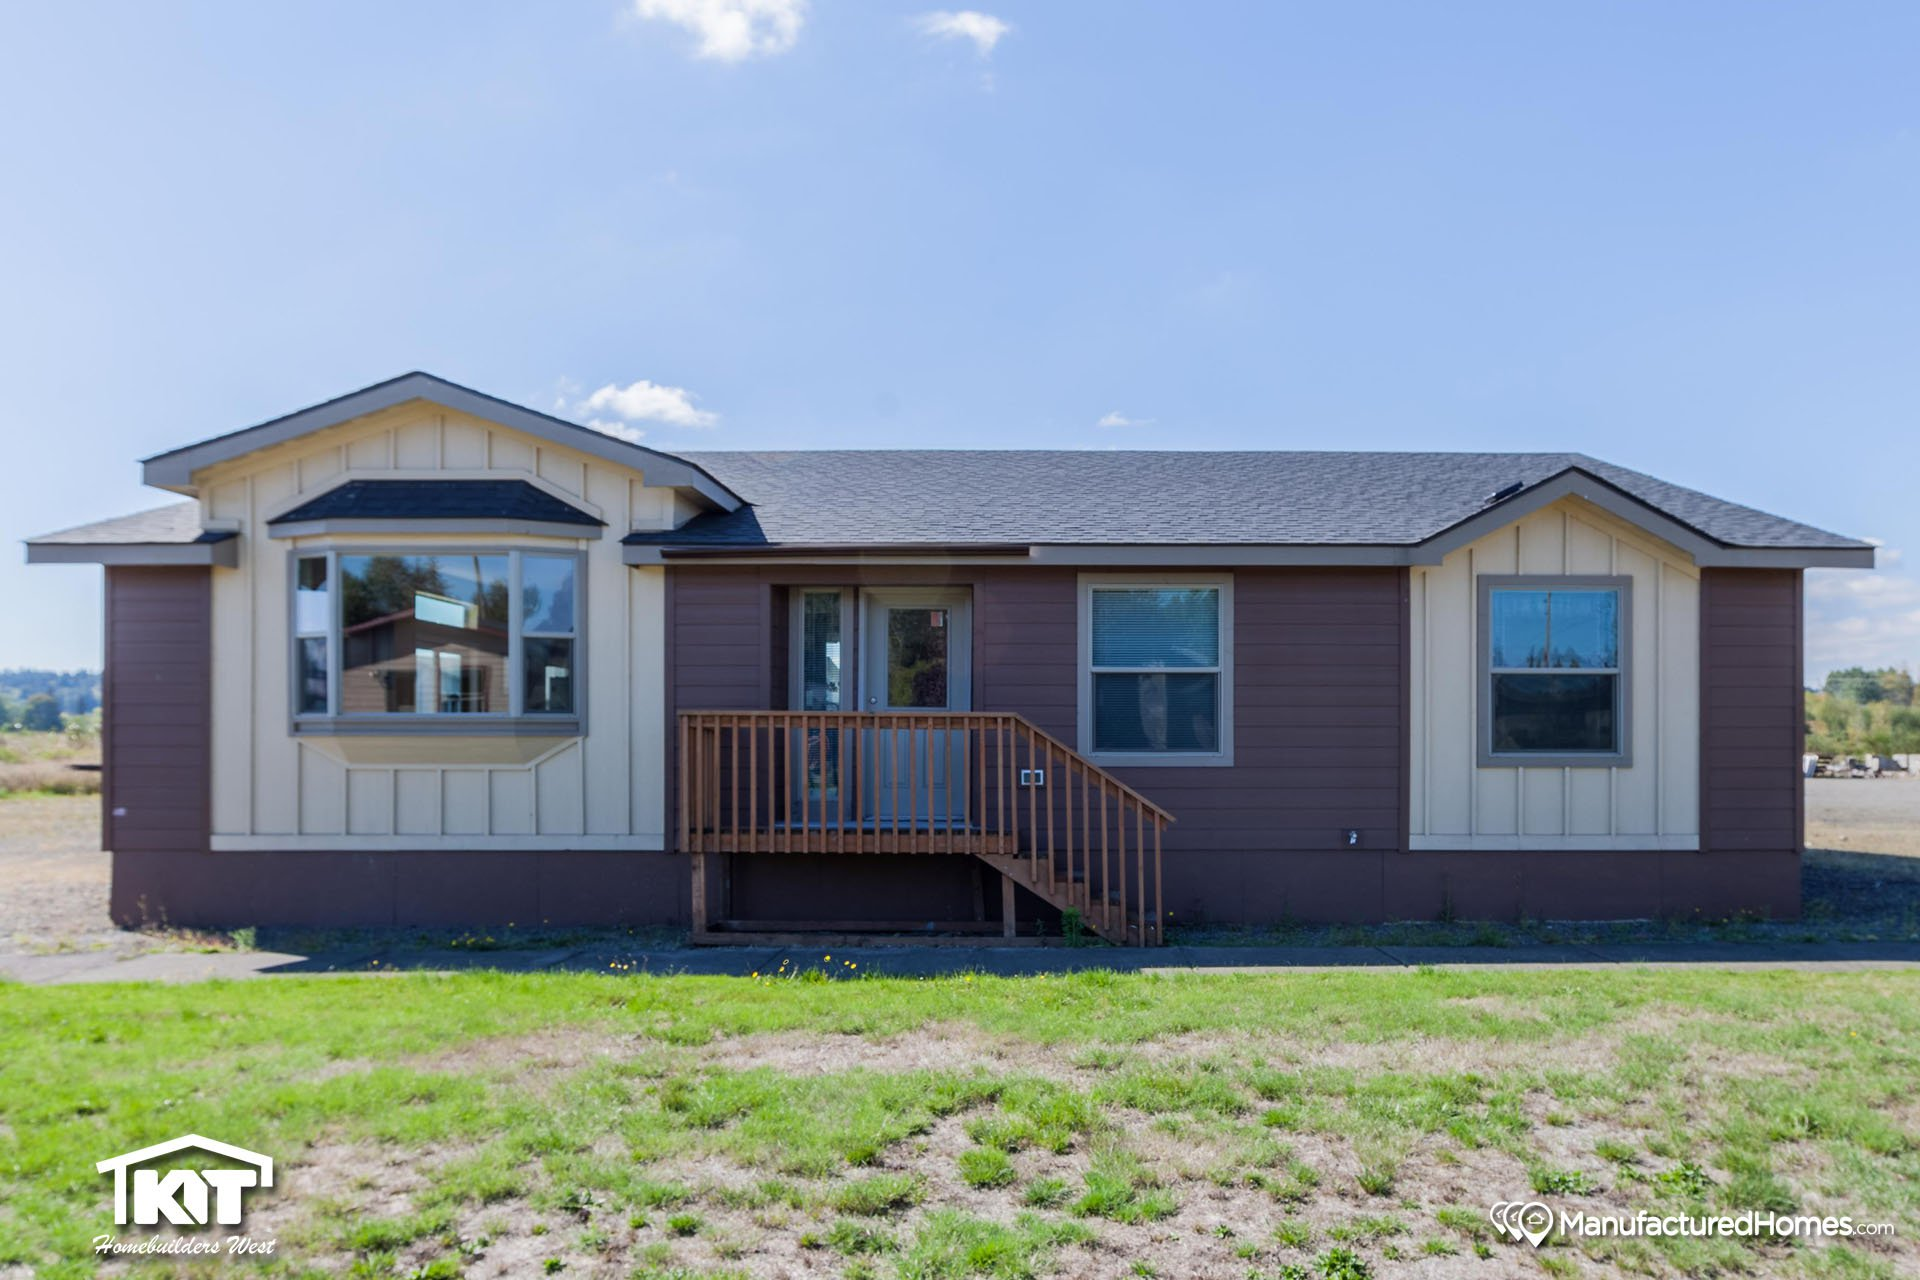 Cedar canyon 2073 by kit home builders west for Kit west homes